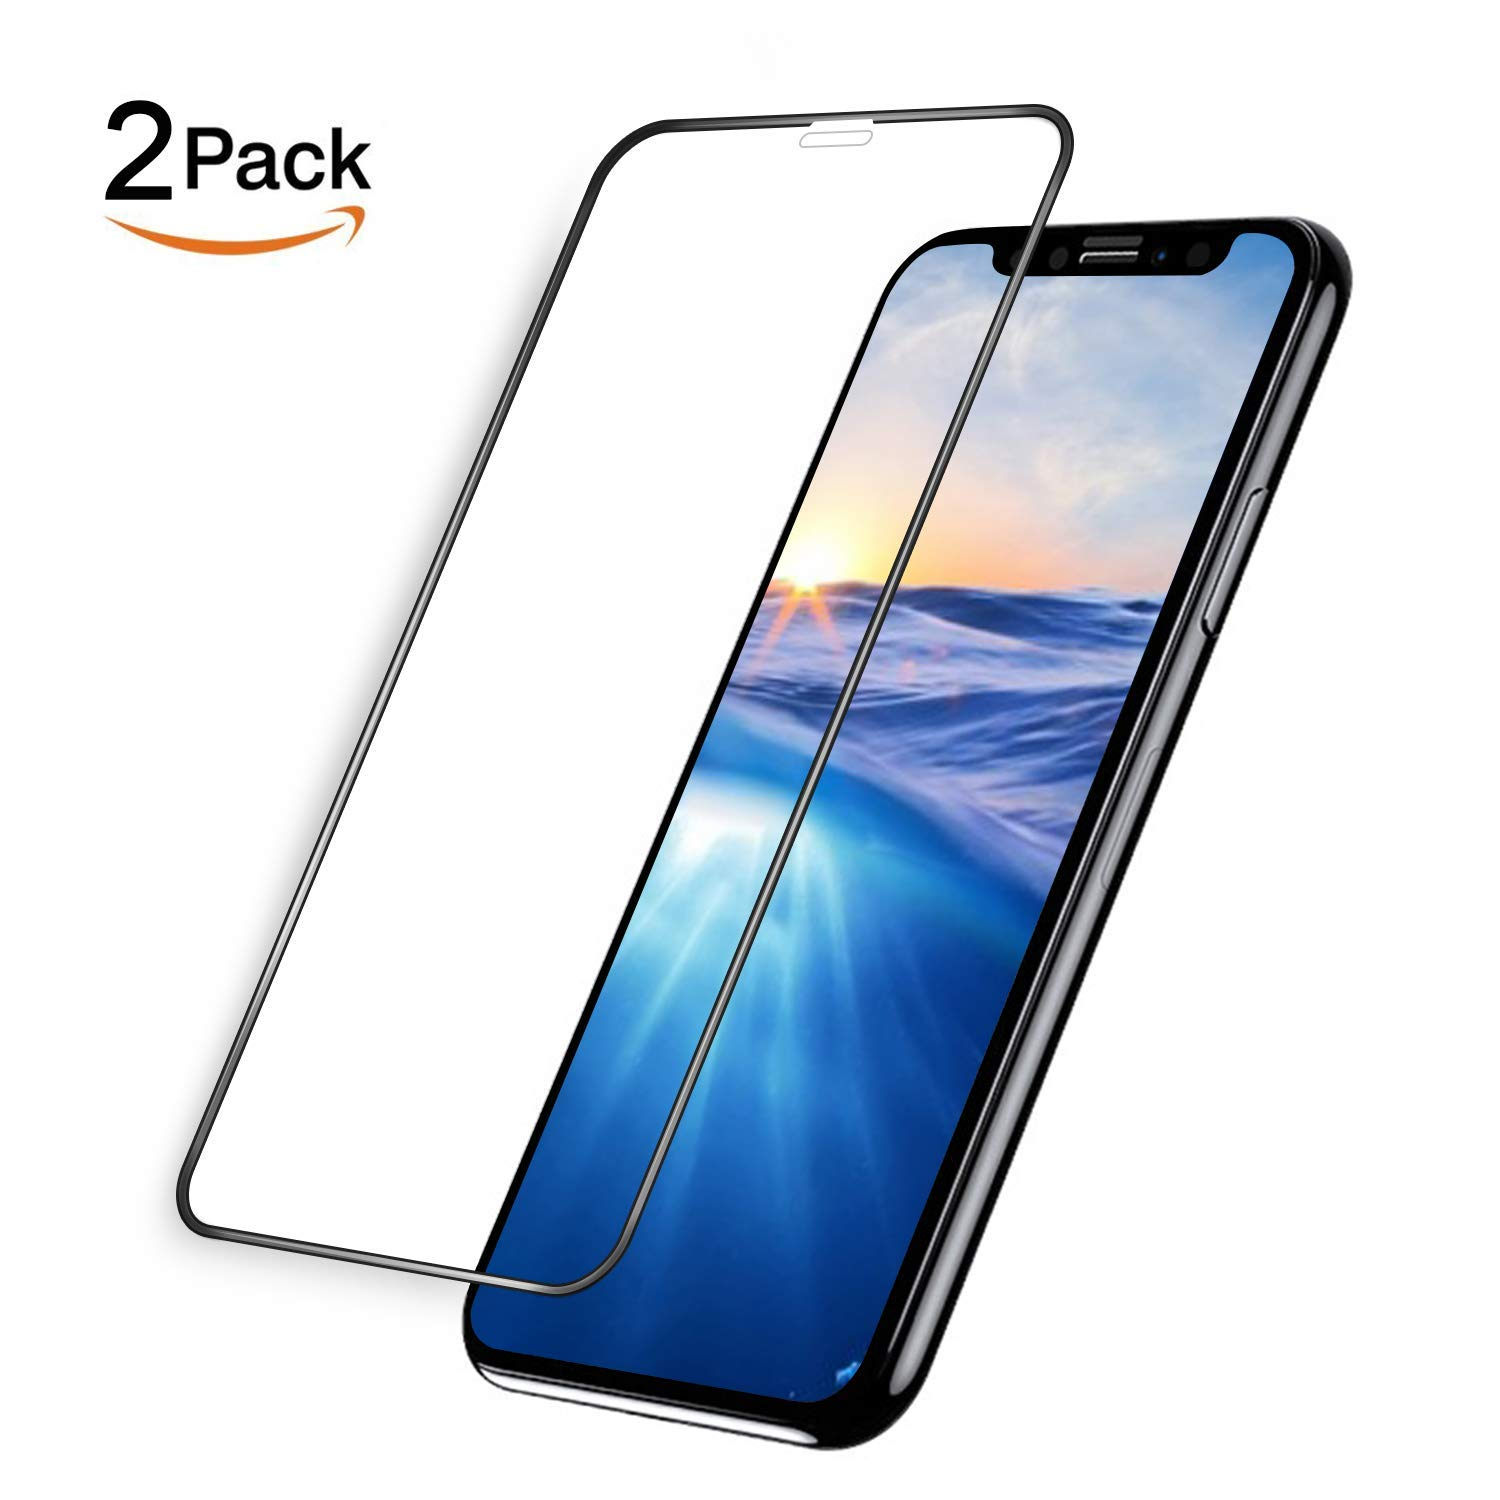 Screen Protector for iPhone Xs Max,Tempered Glass Screen Protector for iPhone Xs Max 6.5 inch[2 Pack]